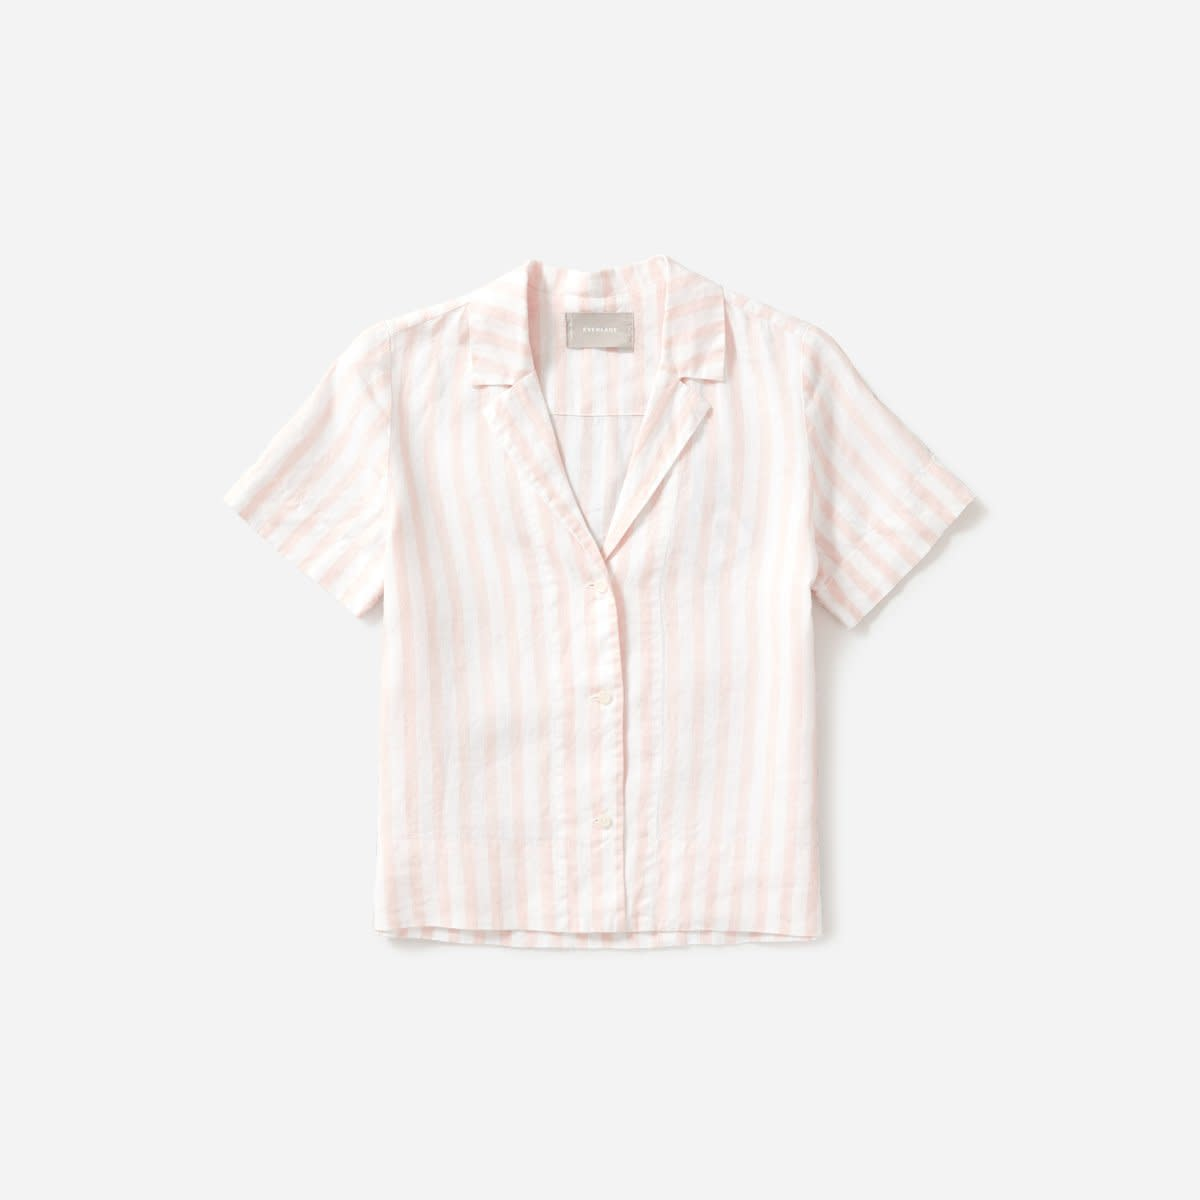 49367bce50a8 Dhani Can t Stop Buying Short-Sleeve Button Downs Like This One